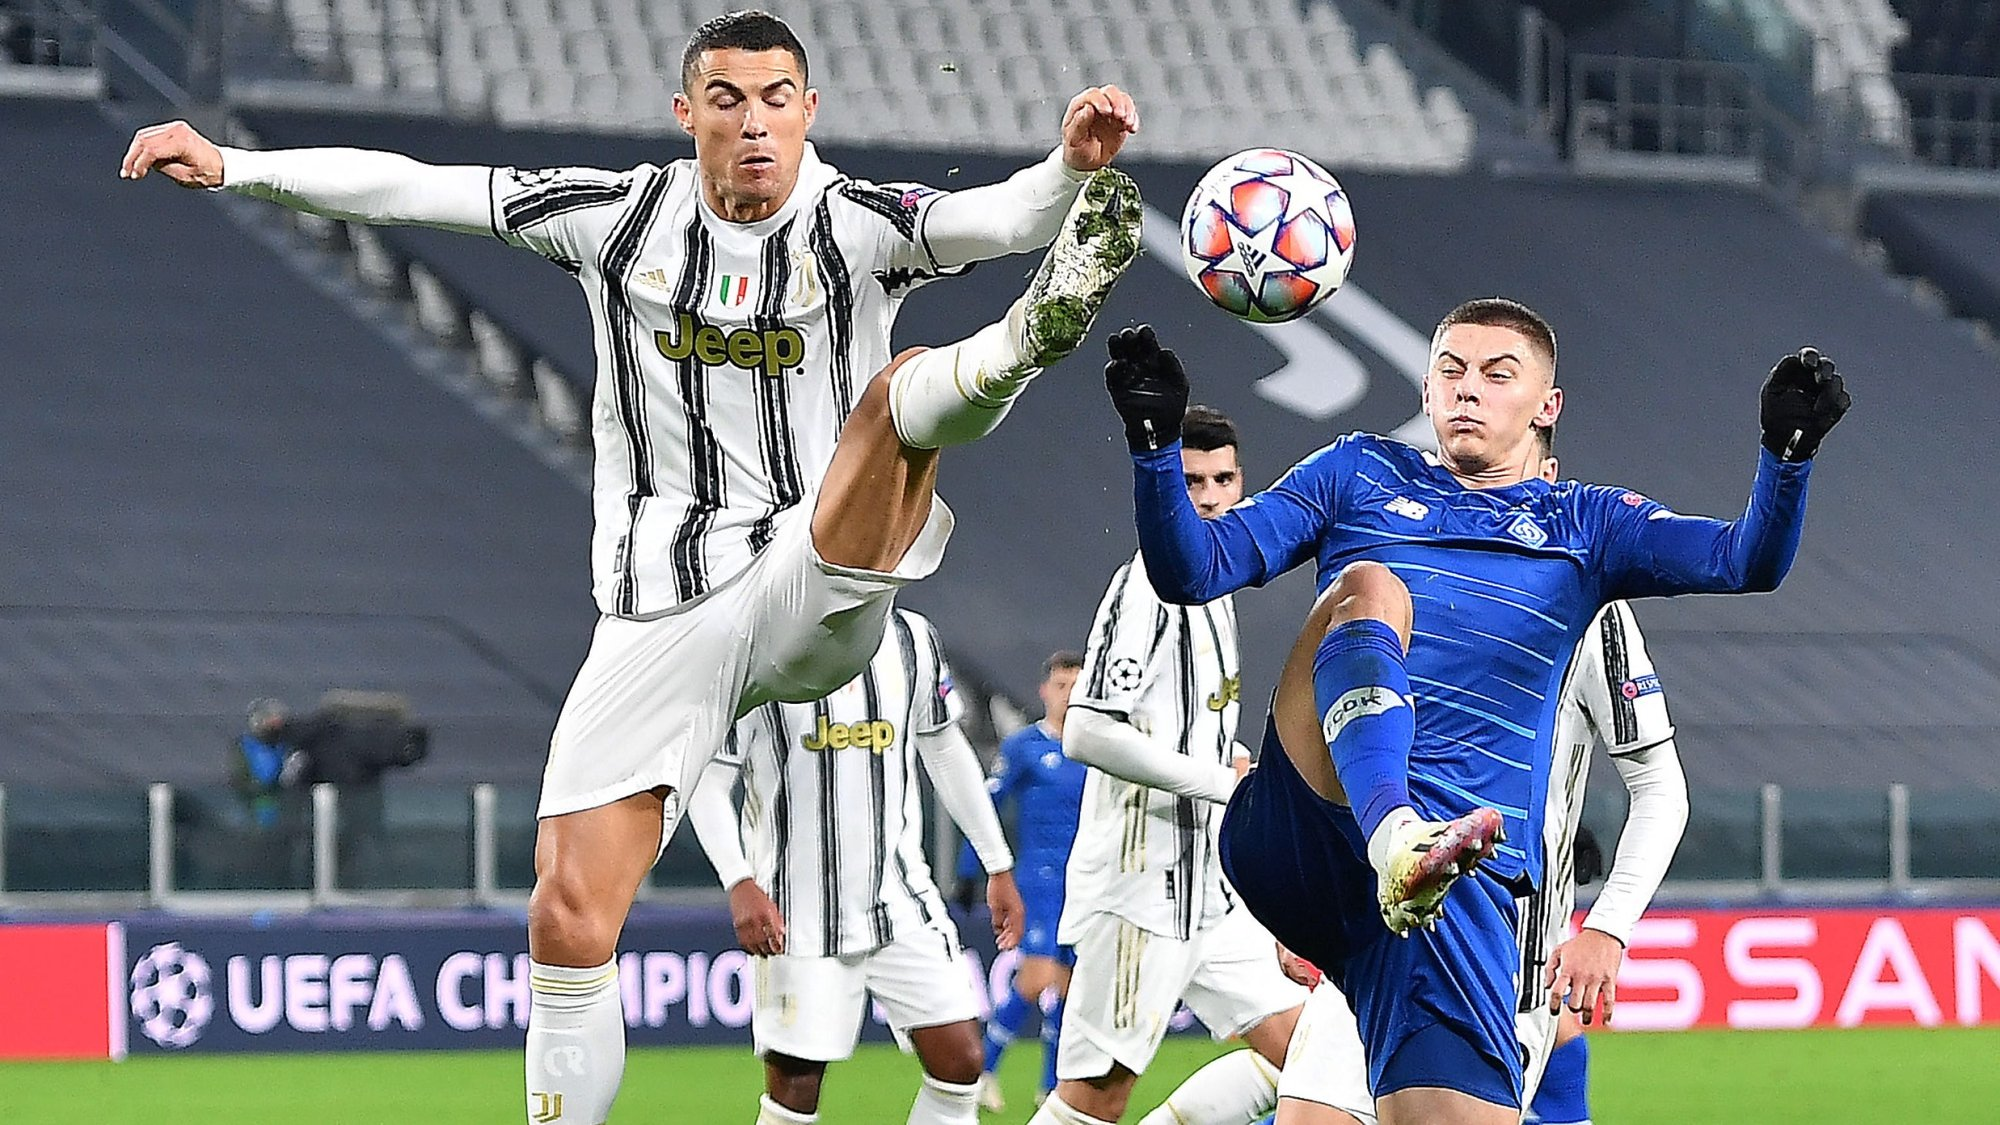 epa08858028 Juventus' Cristiano Ronaldo(L) in action during the UEFA Champions League Group G soccer match between Juventus FC vs FK Dynamo Kyiv at the Allianz Stadium in Turin, Italy, 2 December 2020.  EPA/ALESSANDRO DI MARCO